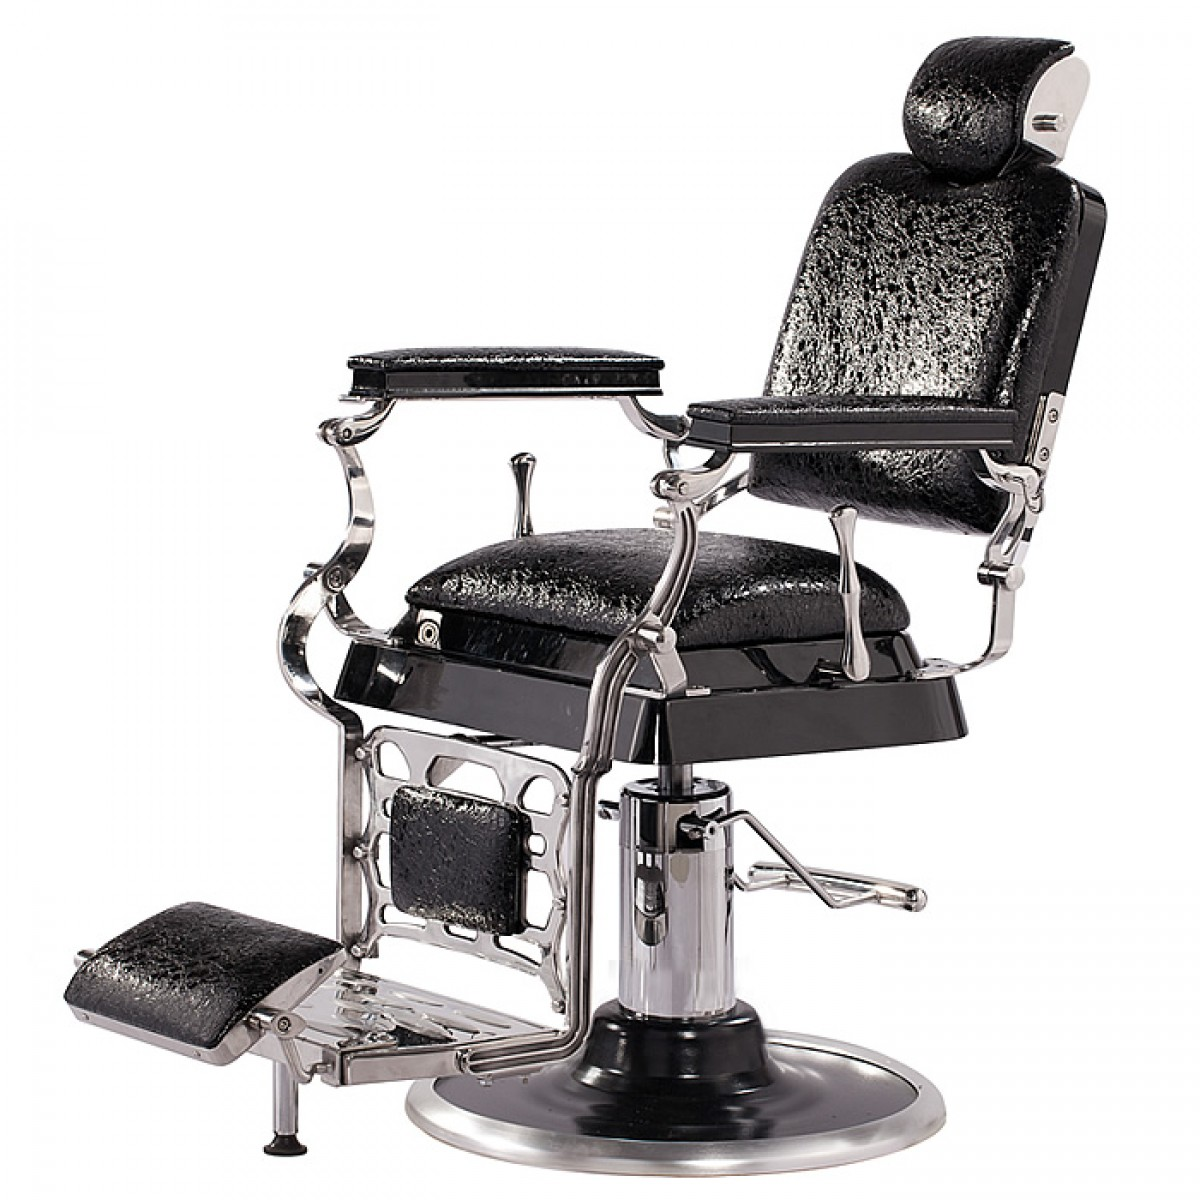 Old Barber Chairs Quotemperor Quot Antique Barber Chair Matt Black Salon